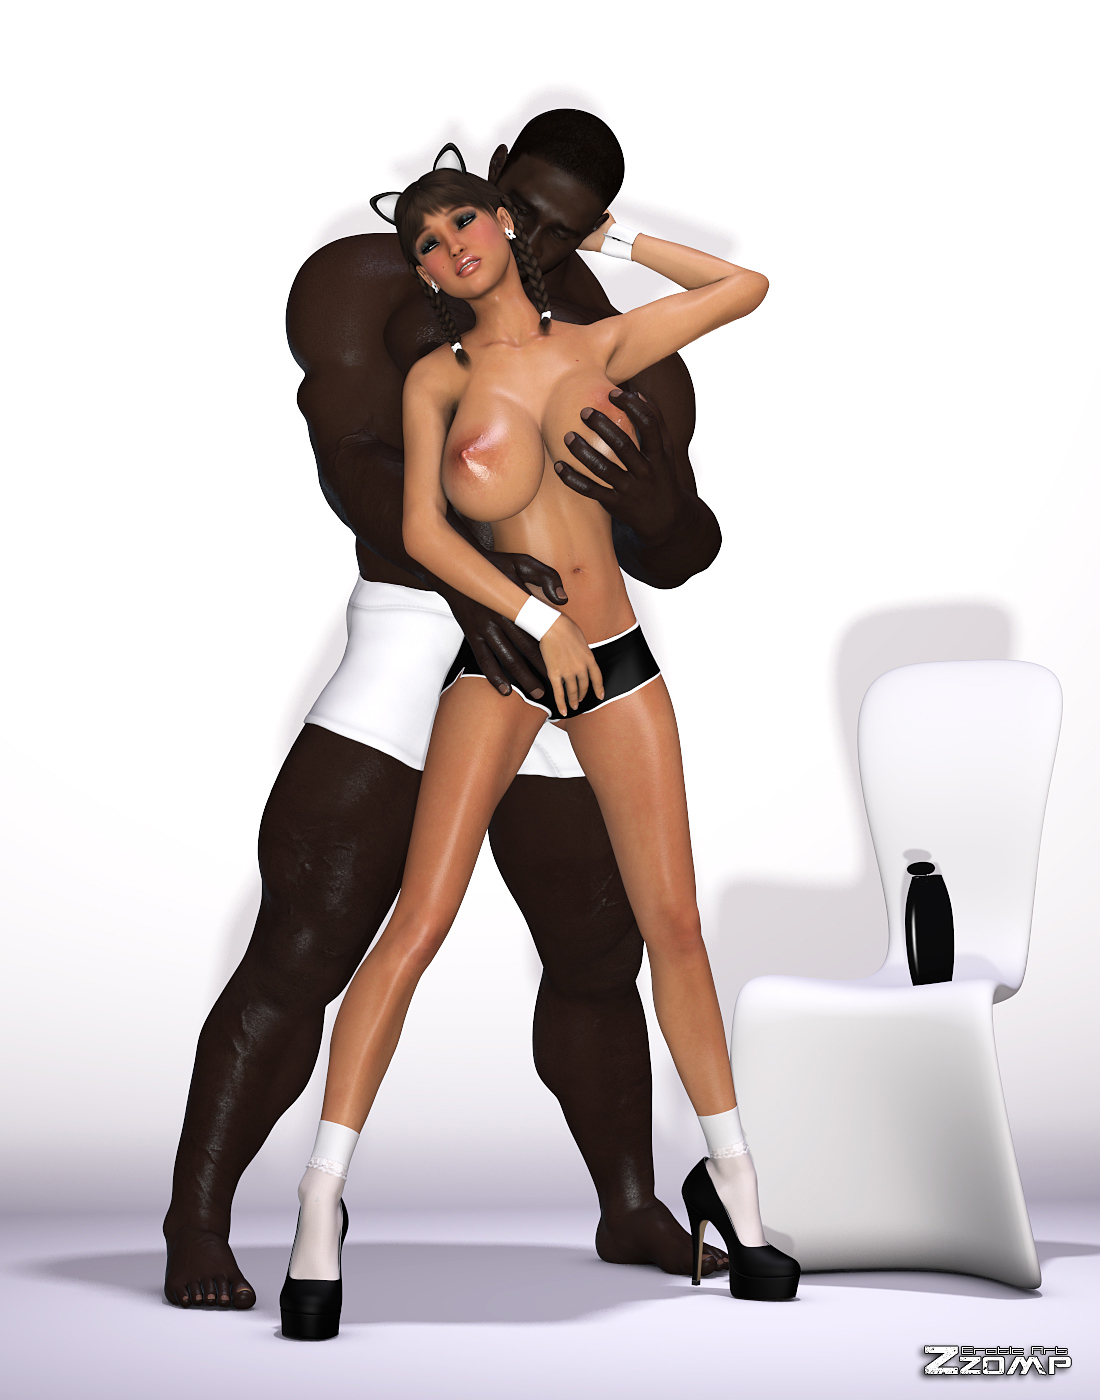 Zzomp – Maria First Interracial Scene2 free sex comic